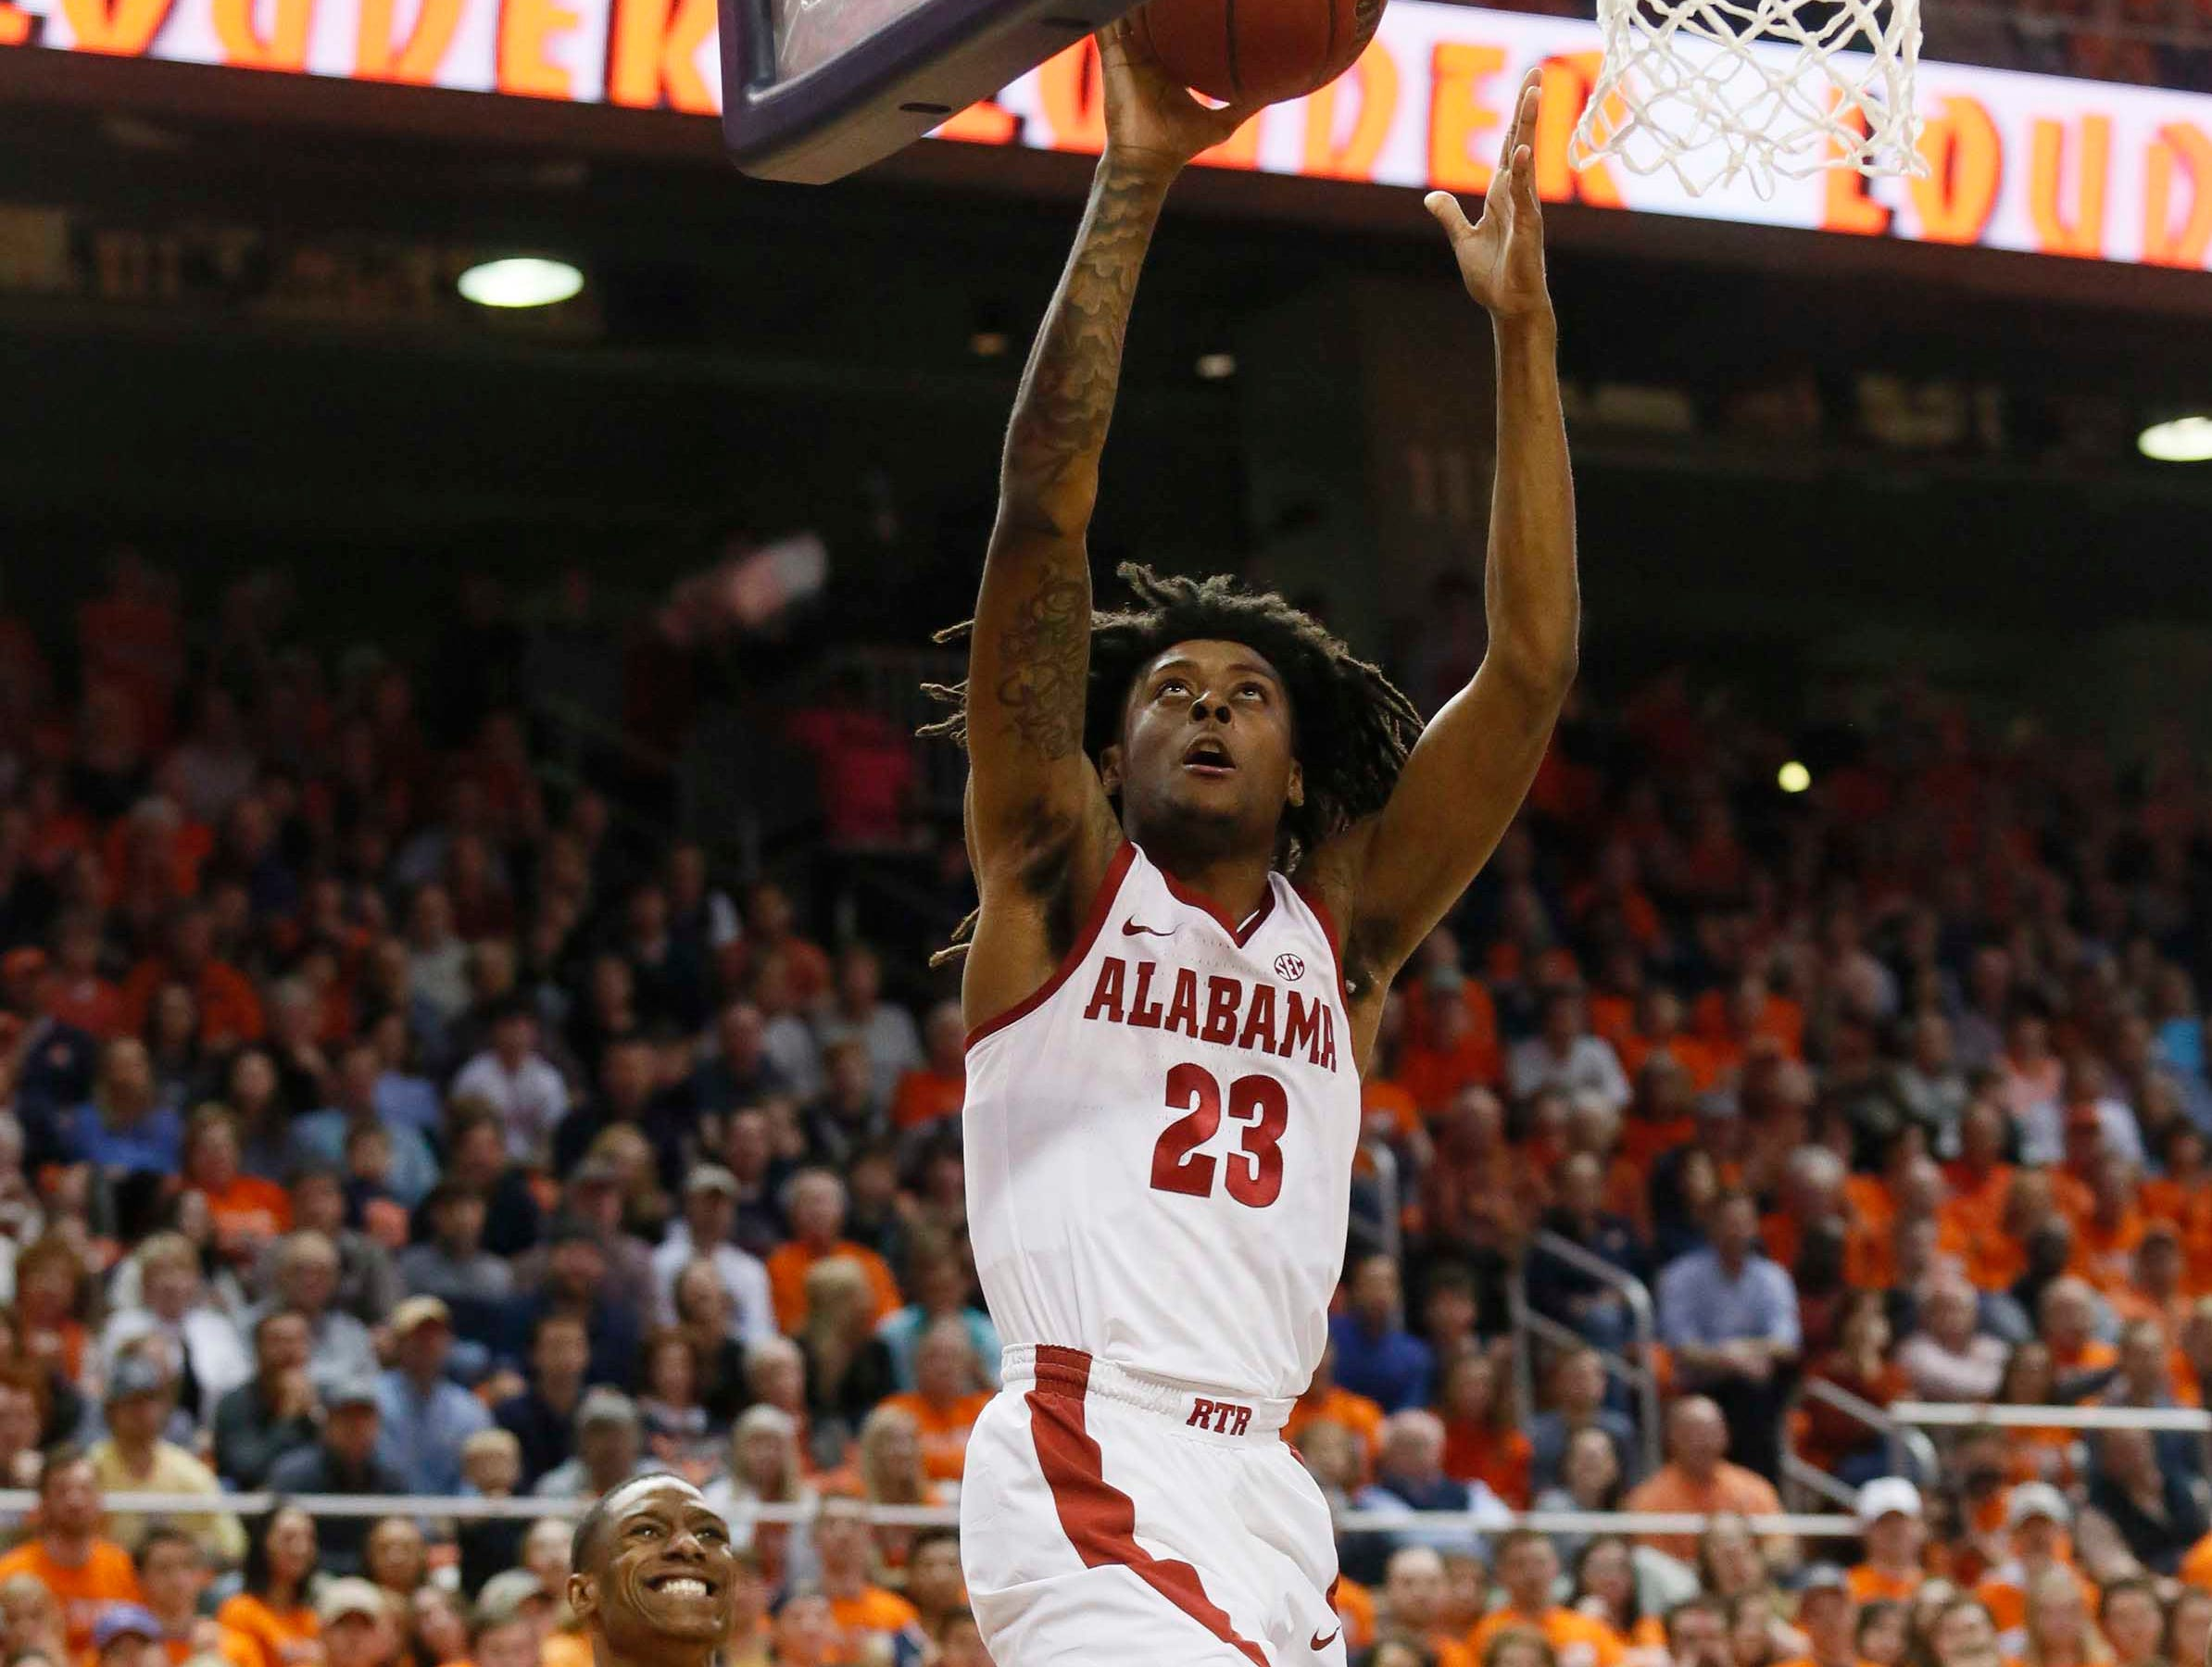 Feb 2, 2019; Auburn, AL, USA; Alabama Crimson Tide guard John Petty (23) takes a shot against the Auburn Tigers during the first half at Auburn Arena. Mandatory Credit: John Reed-USA TODAY Sports